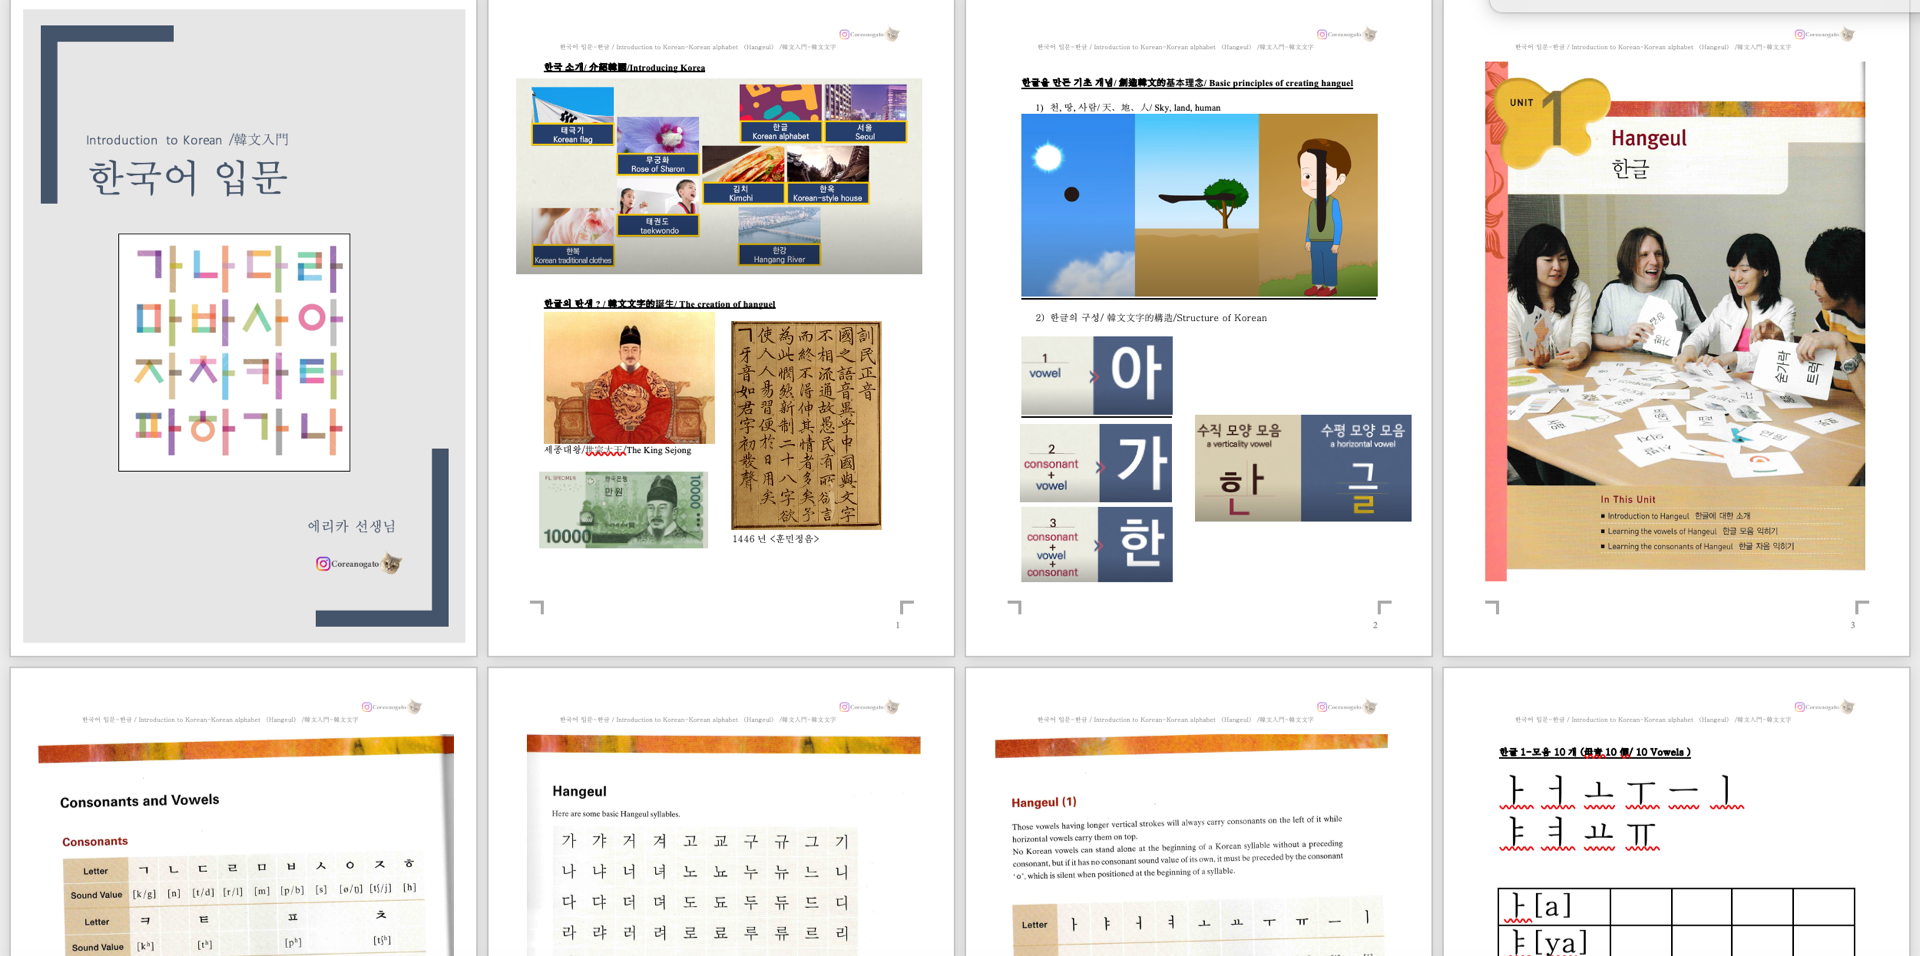 Introduction to Korean  - Background about Korean and Korea - Korean alphabets - Rules of pronunciation